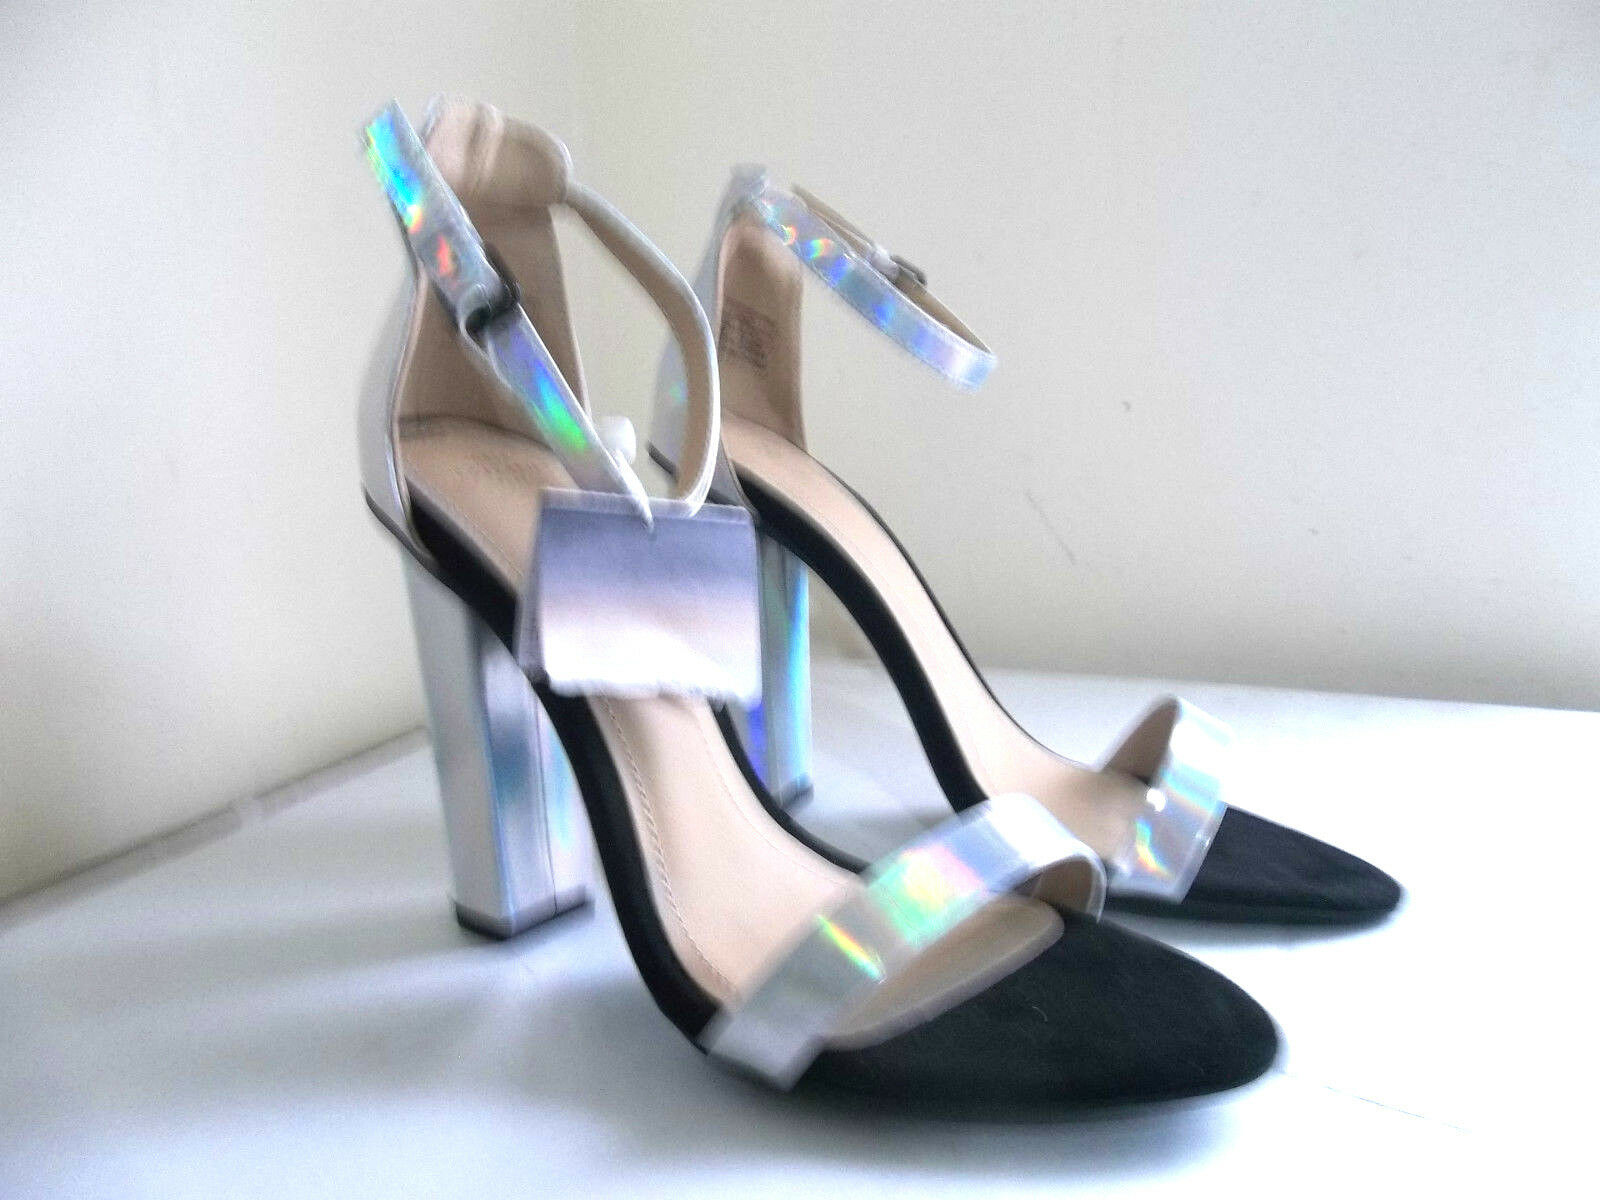 NEW ZARA BLOGGERS FAVE UK3 SHINY BLOCK HEEL SANDALS UK3 FAVE /EUR36 77b1b3